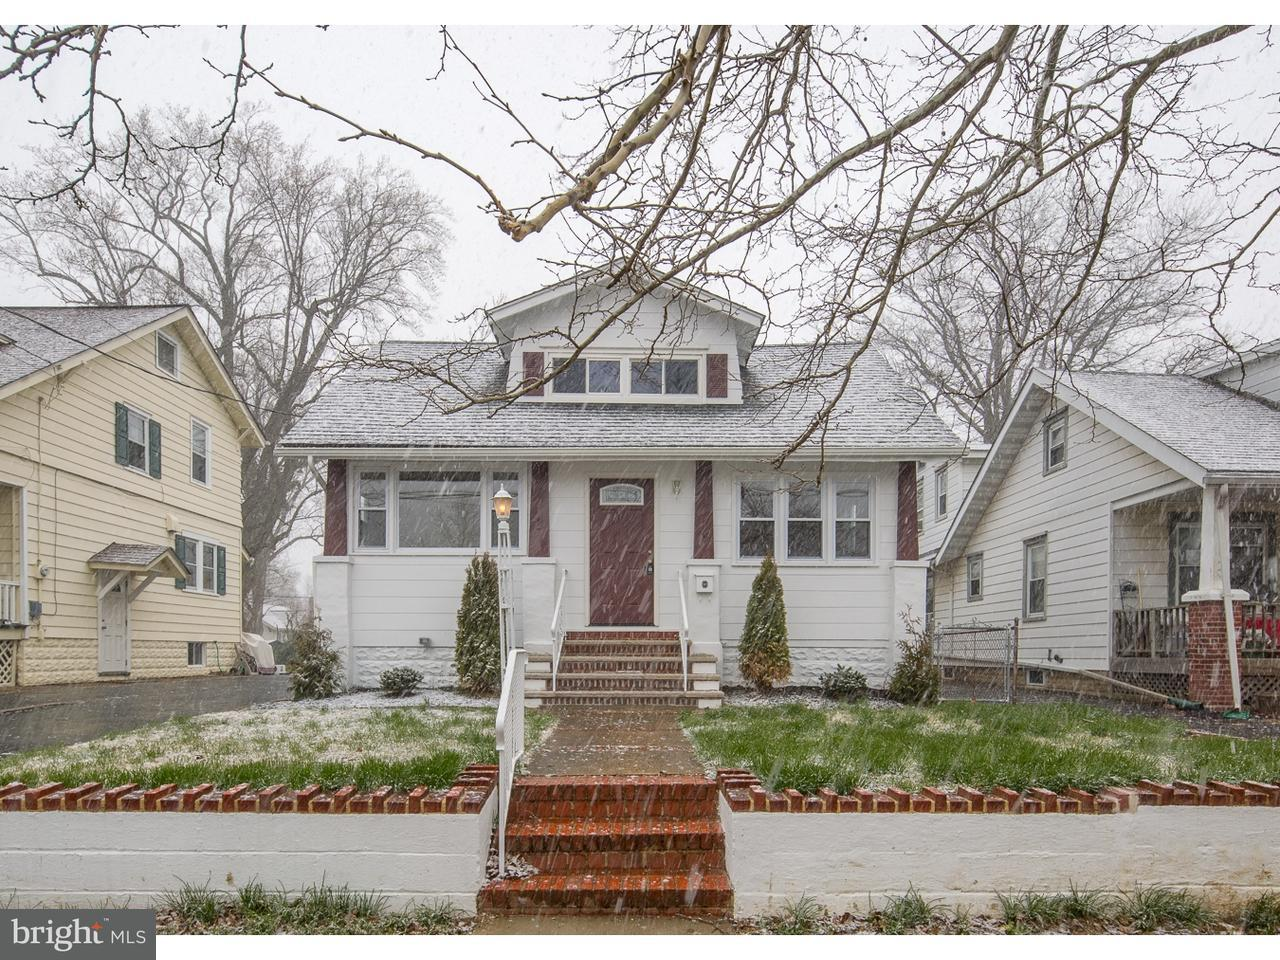 Single Family Home for Sale at 113 MANHEIM Avenue Oaklyn, New Jersey 08107 United States